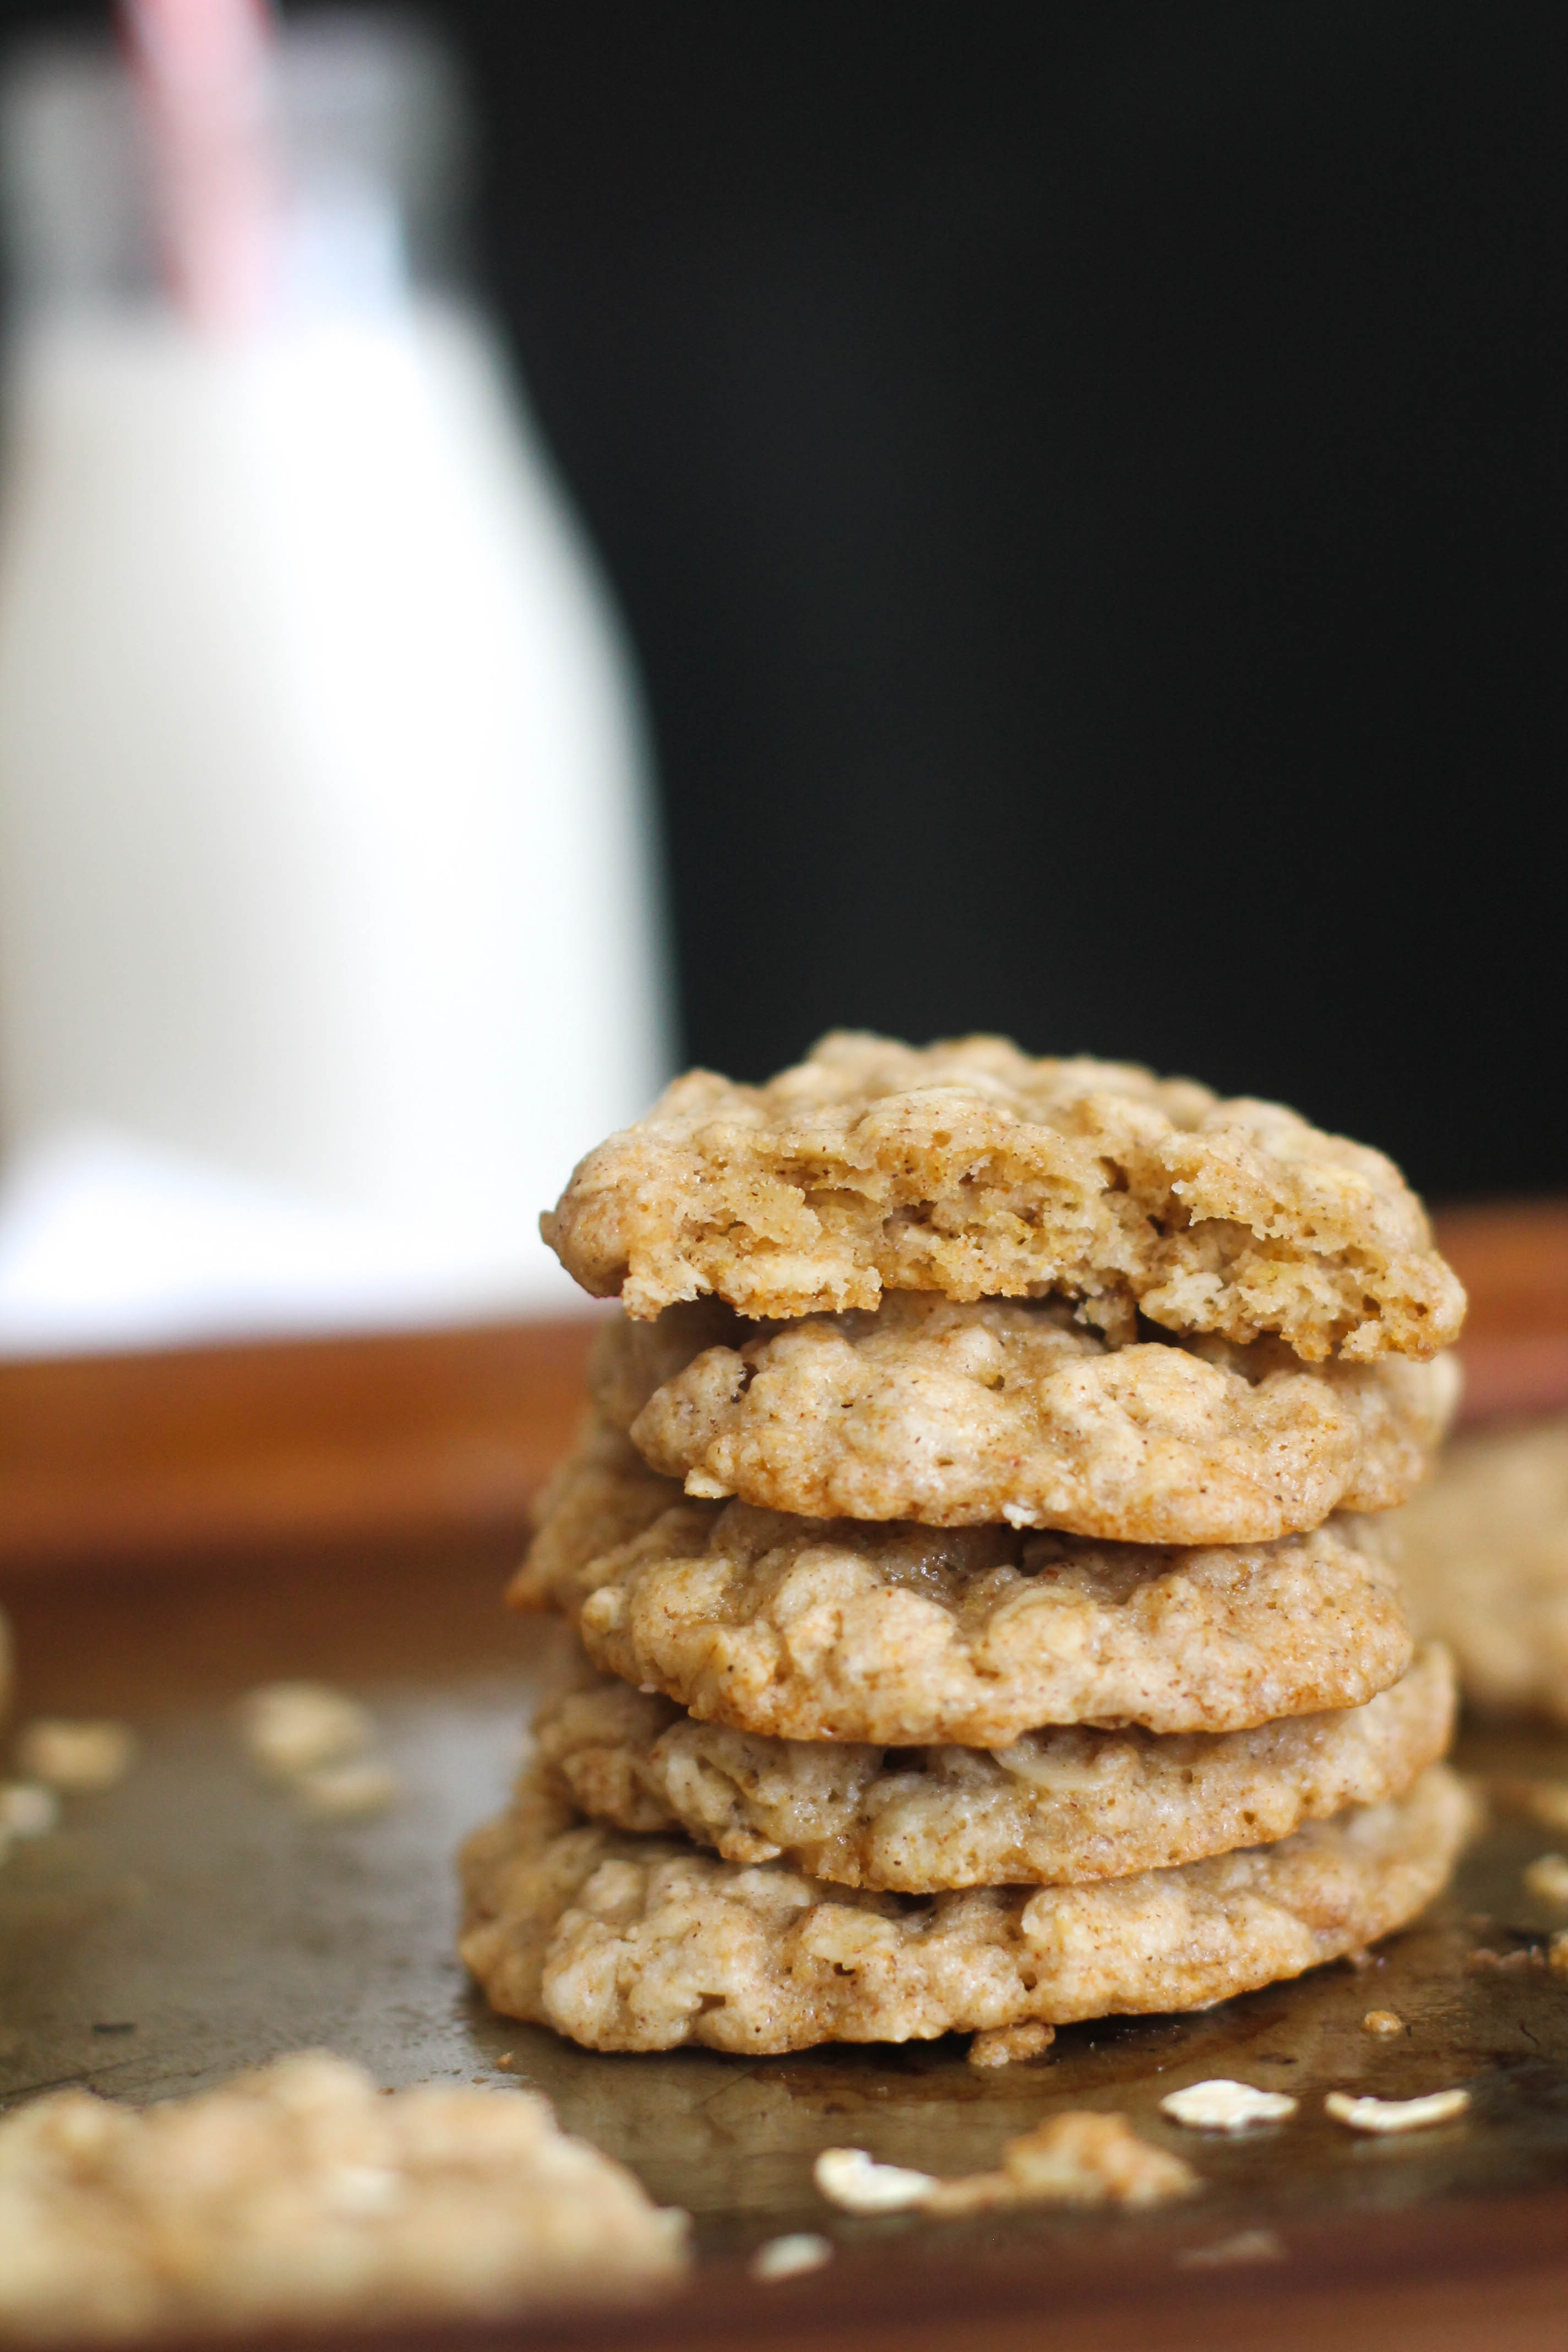 These chai spiced oatmeal cookies are vegan, gluten free, full of flavor, and an easy dessert. Made with seven ingredients and only requiring 30 minutes, these make for a healthier alternative.